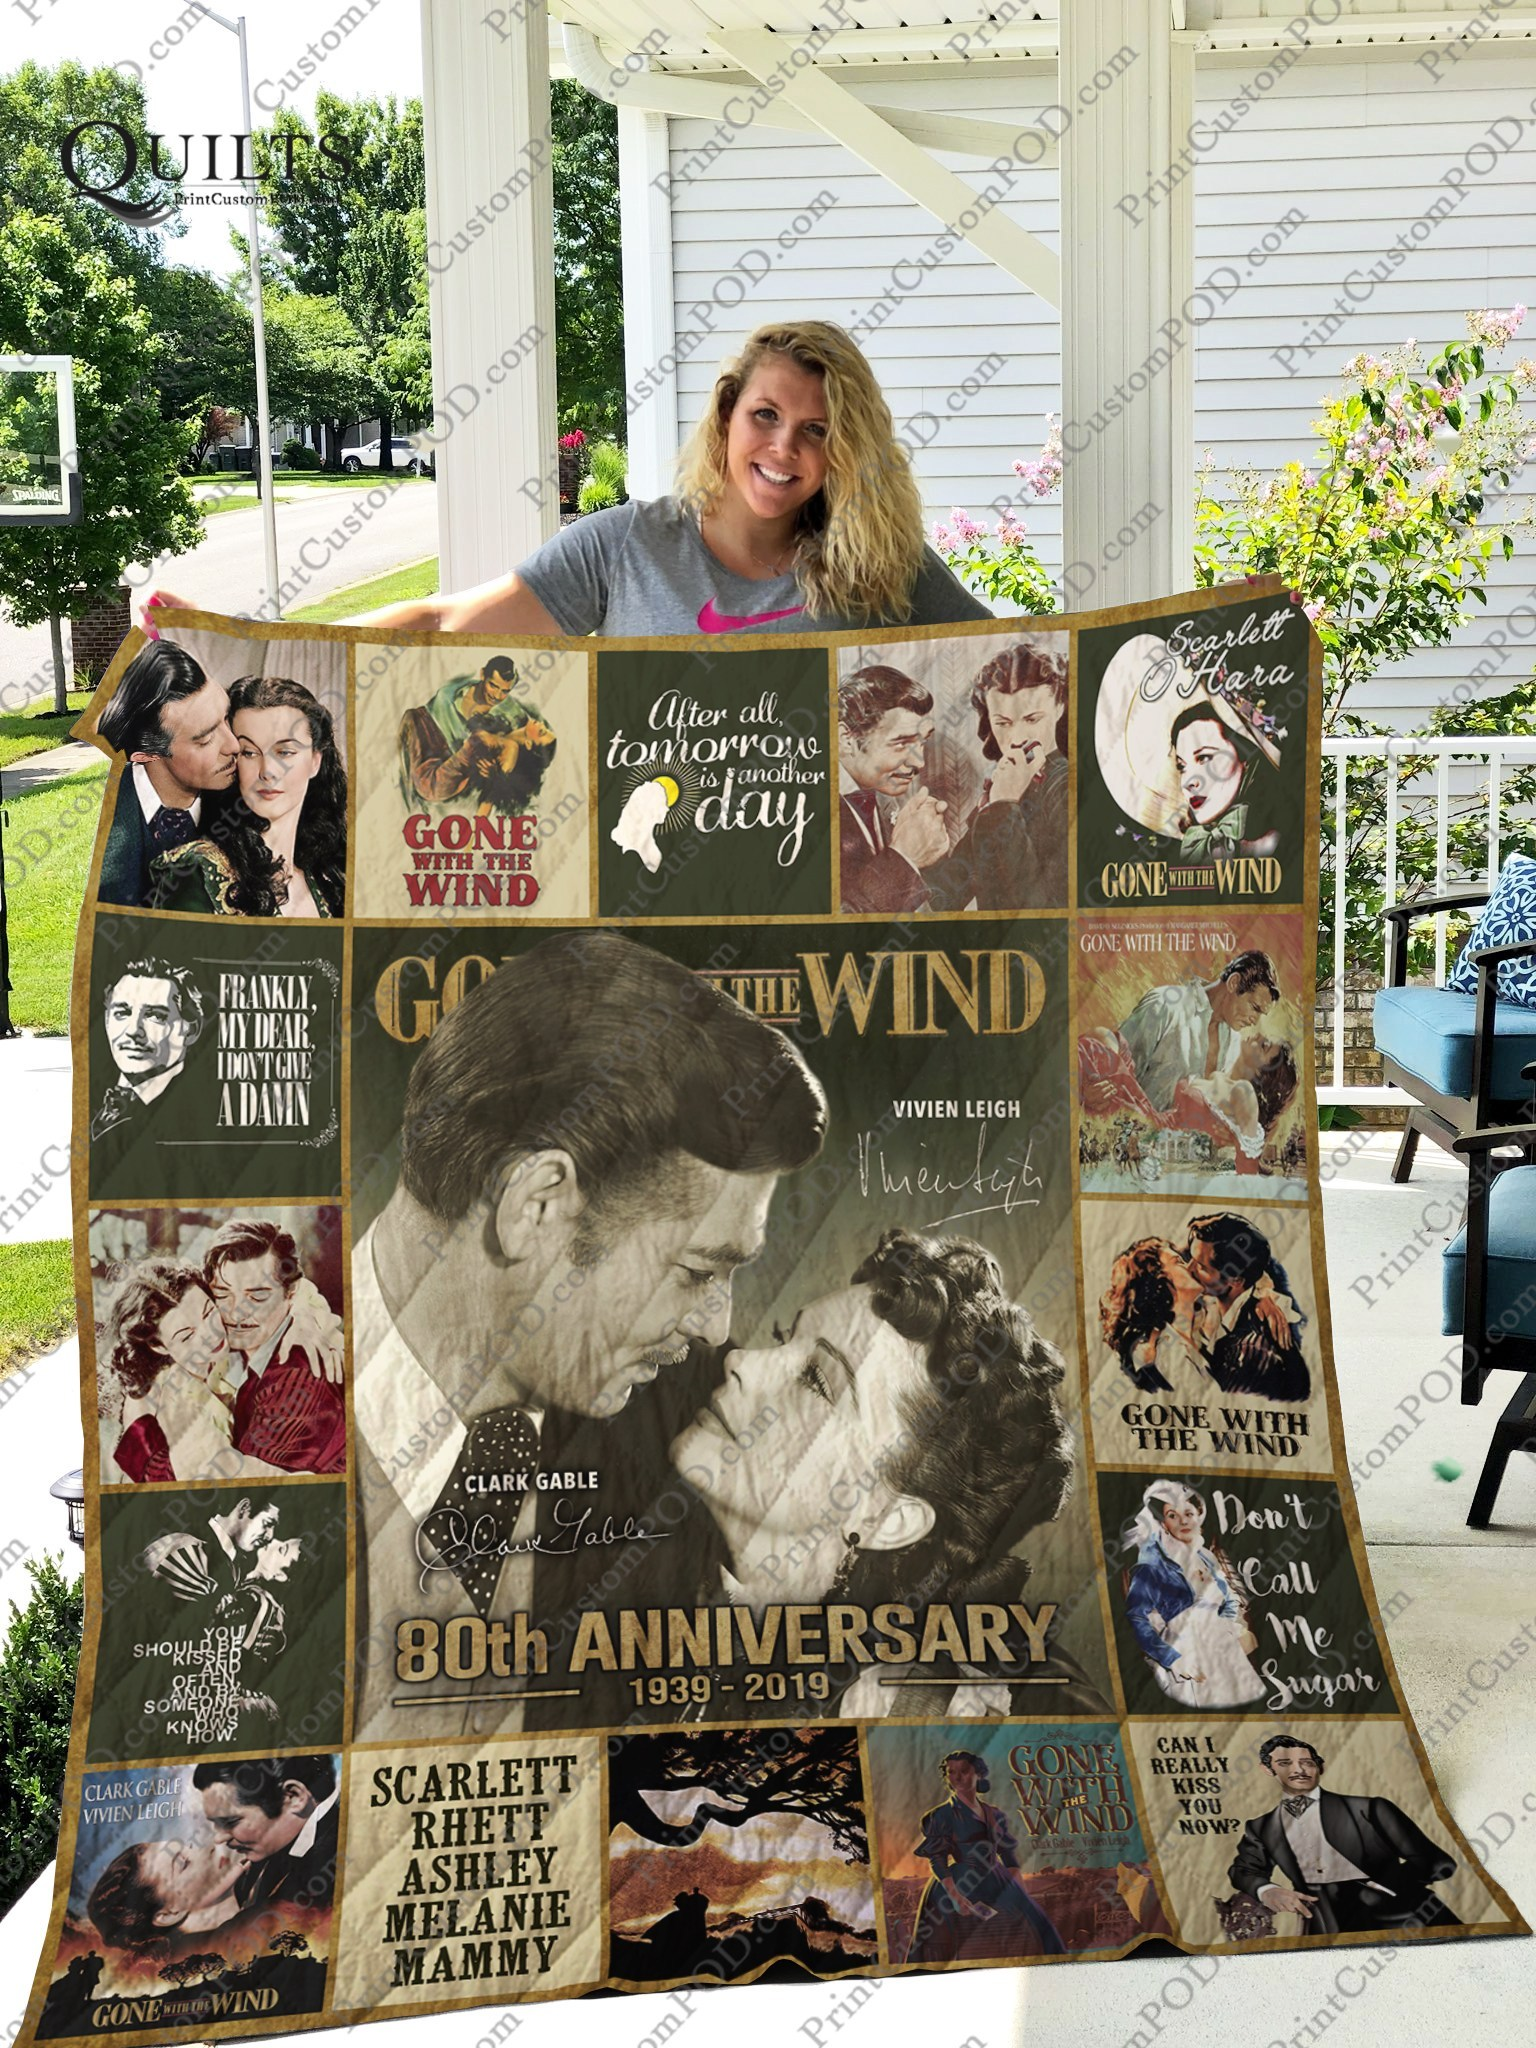 Gone with the wind 80th anniversary quilt 2